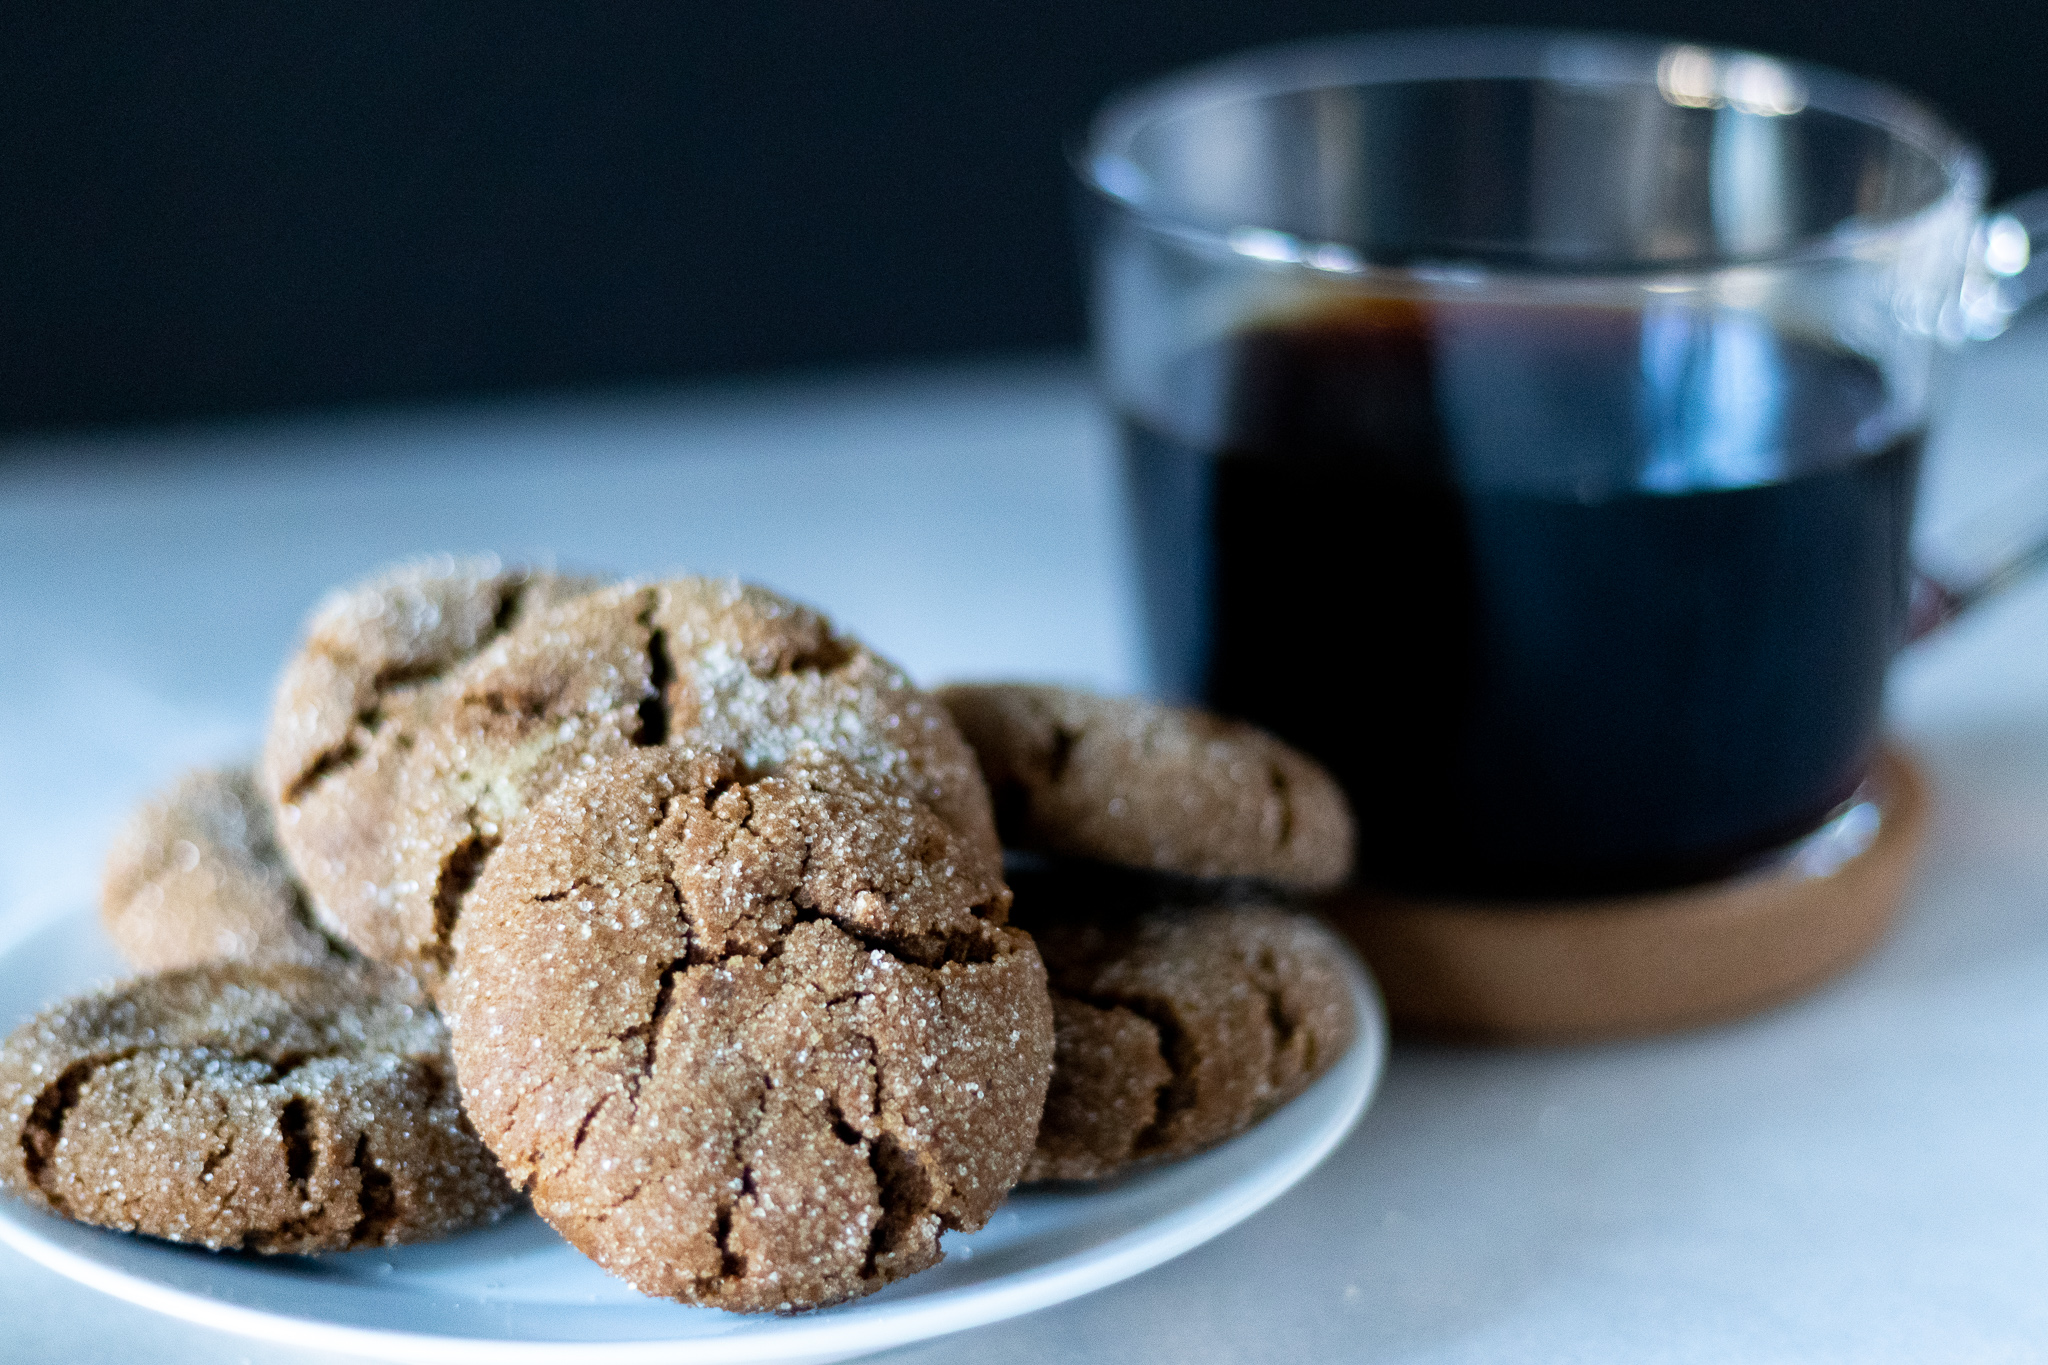 """What screams """"HOLIDAYS!"""" more than ginger bread. These soft vegan ginger cookies are one of my favorite holiday treats. Serve these with a cup of hot coffee, or a glass of vegan egg nog, and you will have no problem getting right into the holiday spirit. Bake up some extra to gift to friends and family and help spread some holiday cheer this season!"""